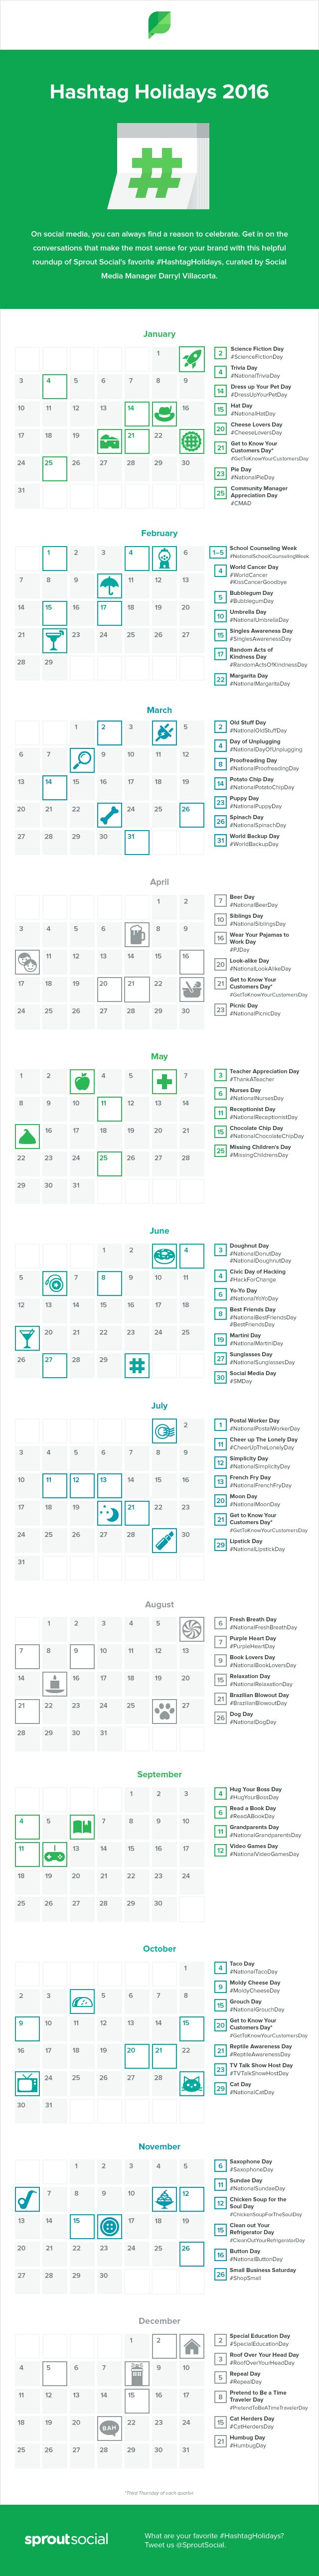 What Are 75 Hashtag Holidays In 2016 To Supplement Your Content Calendar? #infographic                                                                                                                                                                                 More